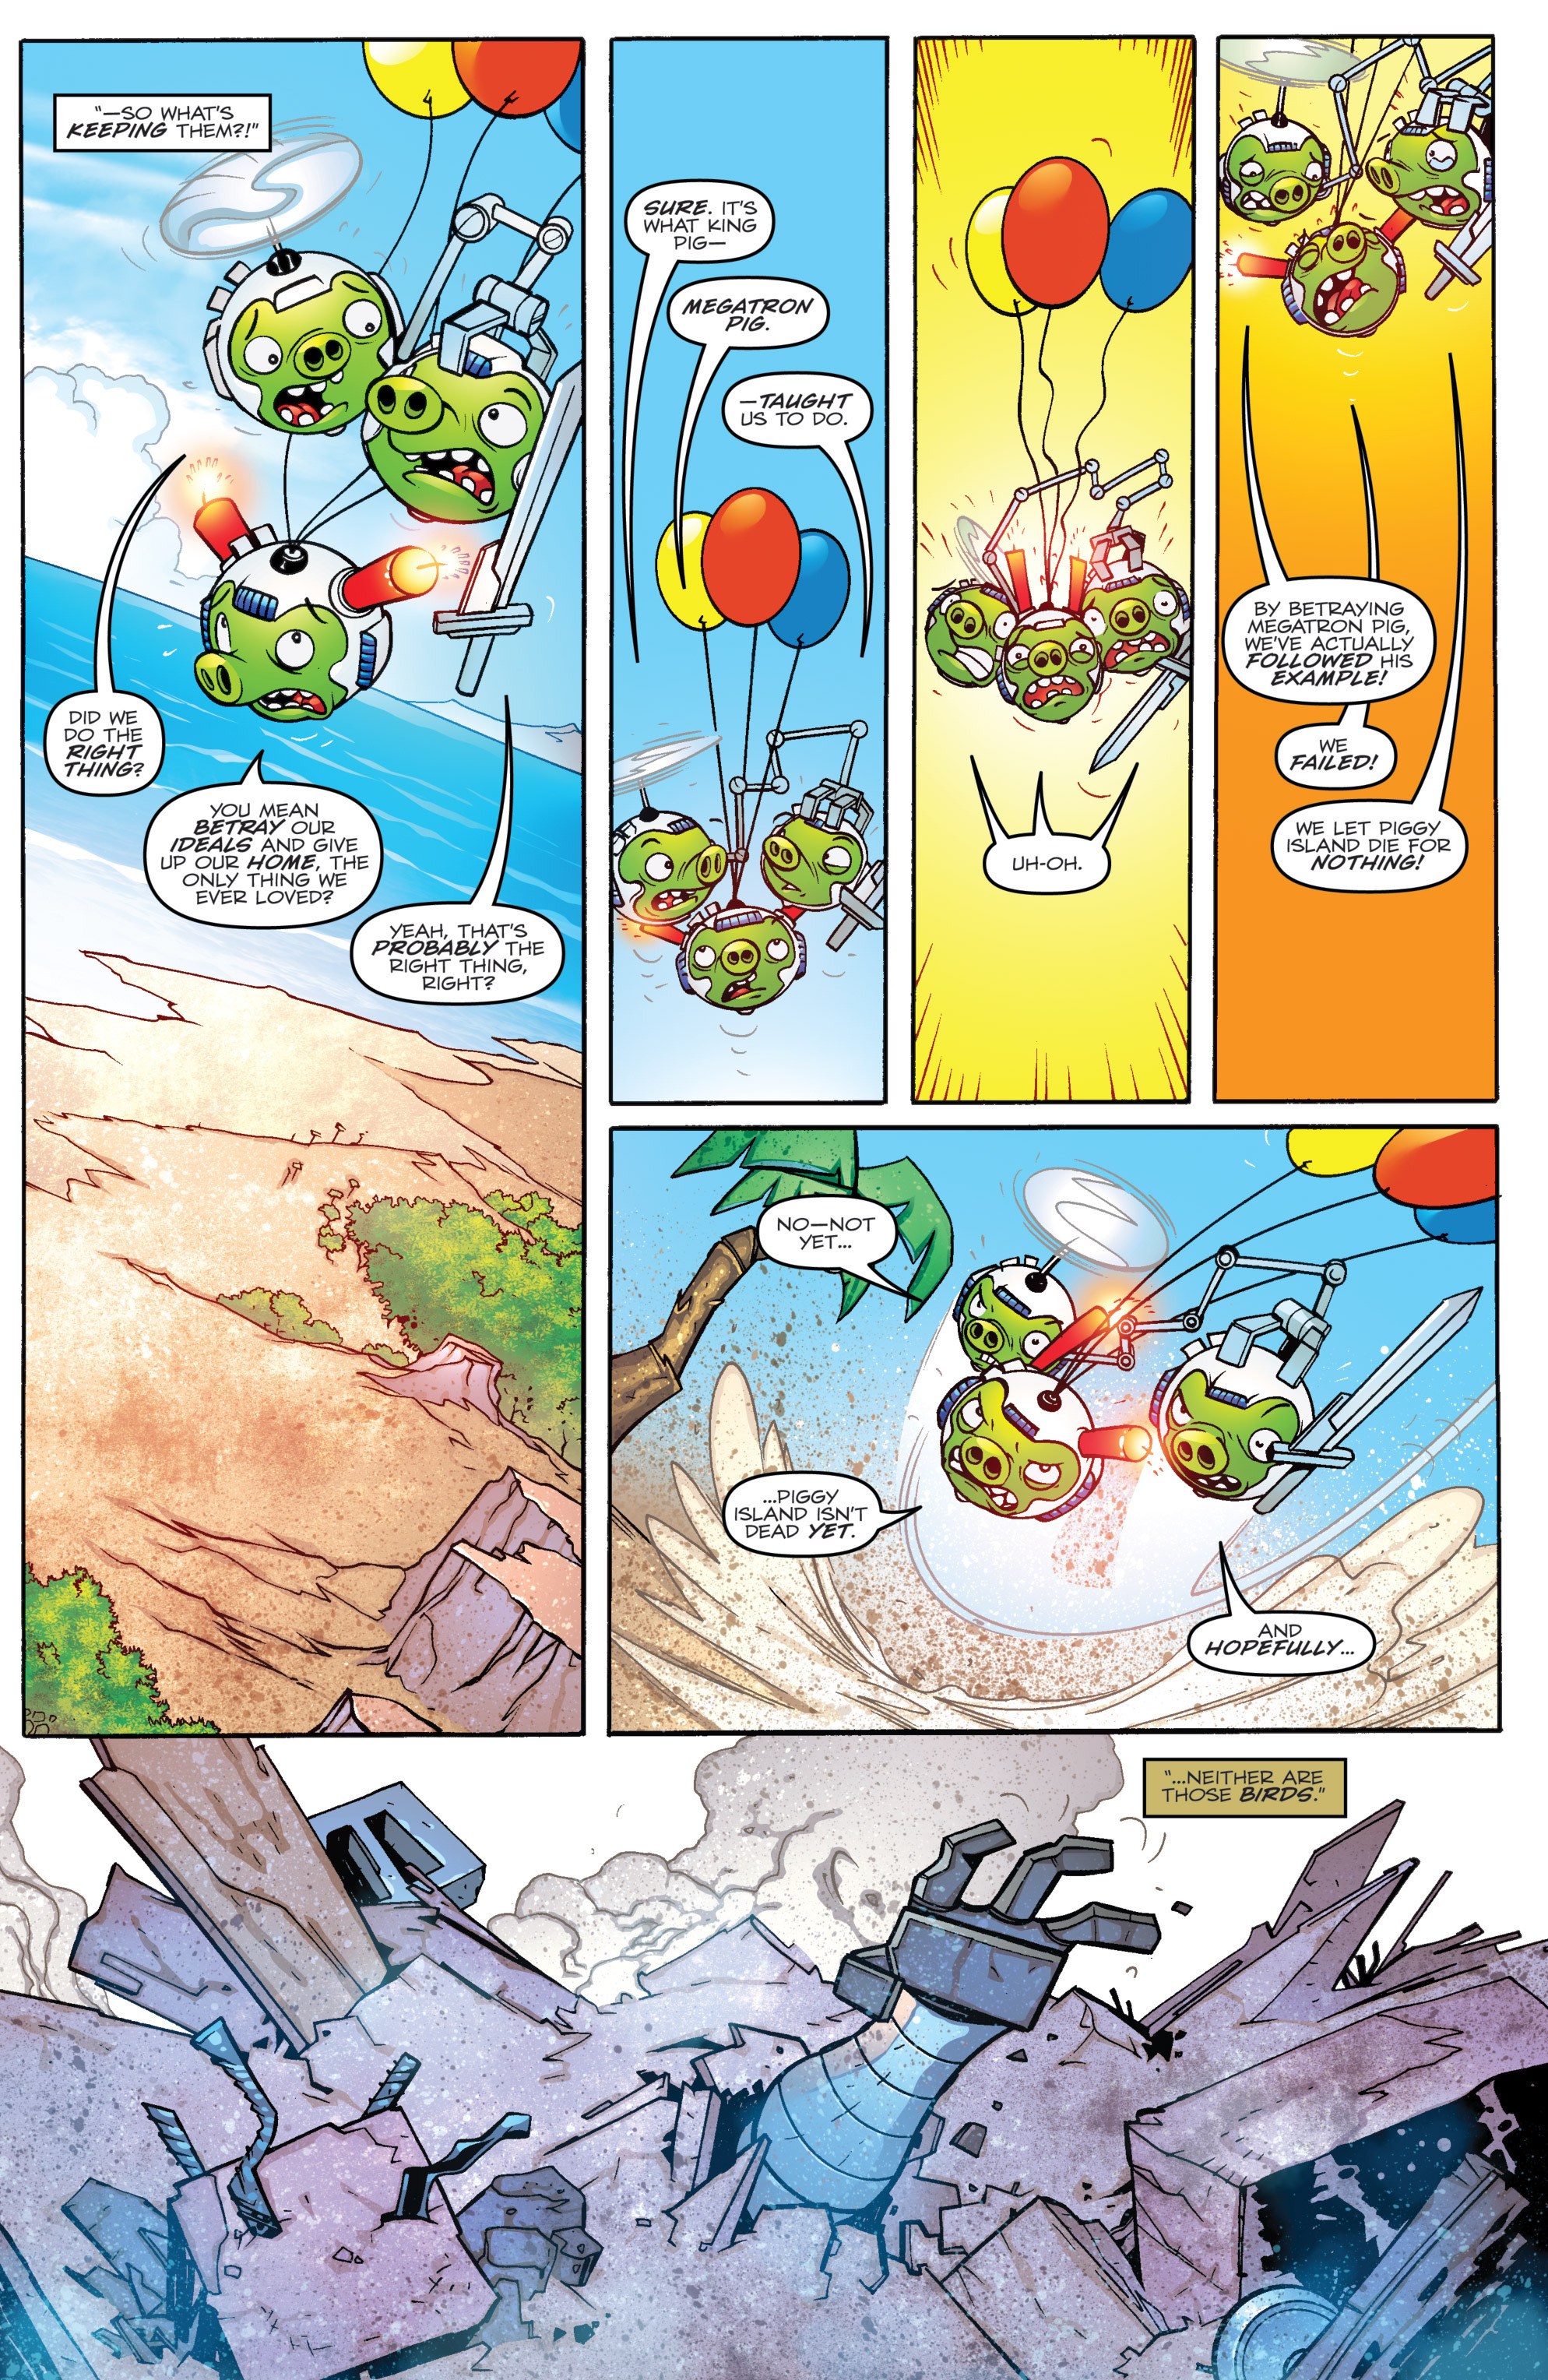 Read online Angry Birds Transformers comic -  Issue #4 - 10